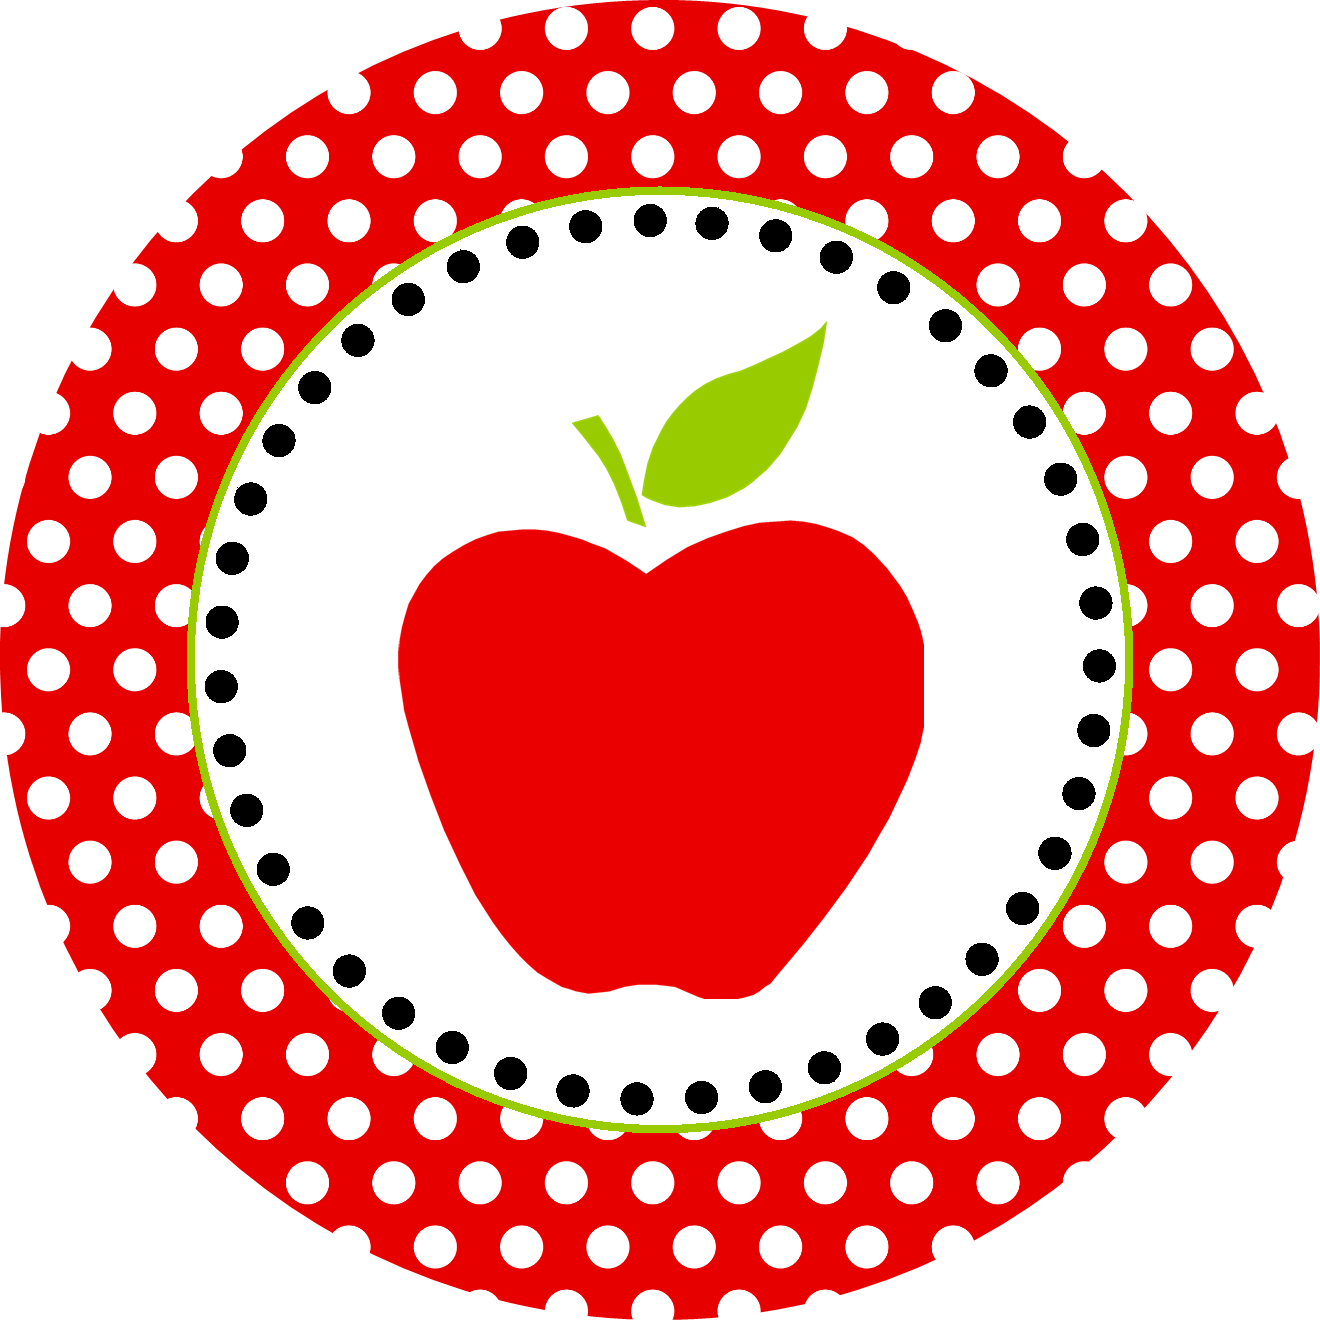 Chevron split apple clipart vector free download Dimple Prints: FREE DOWNLOAD: Back to School Party & Teacher ... vector free download